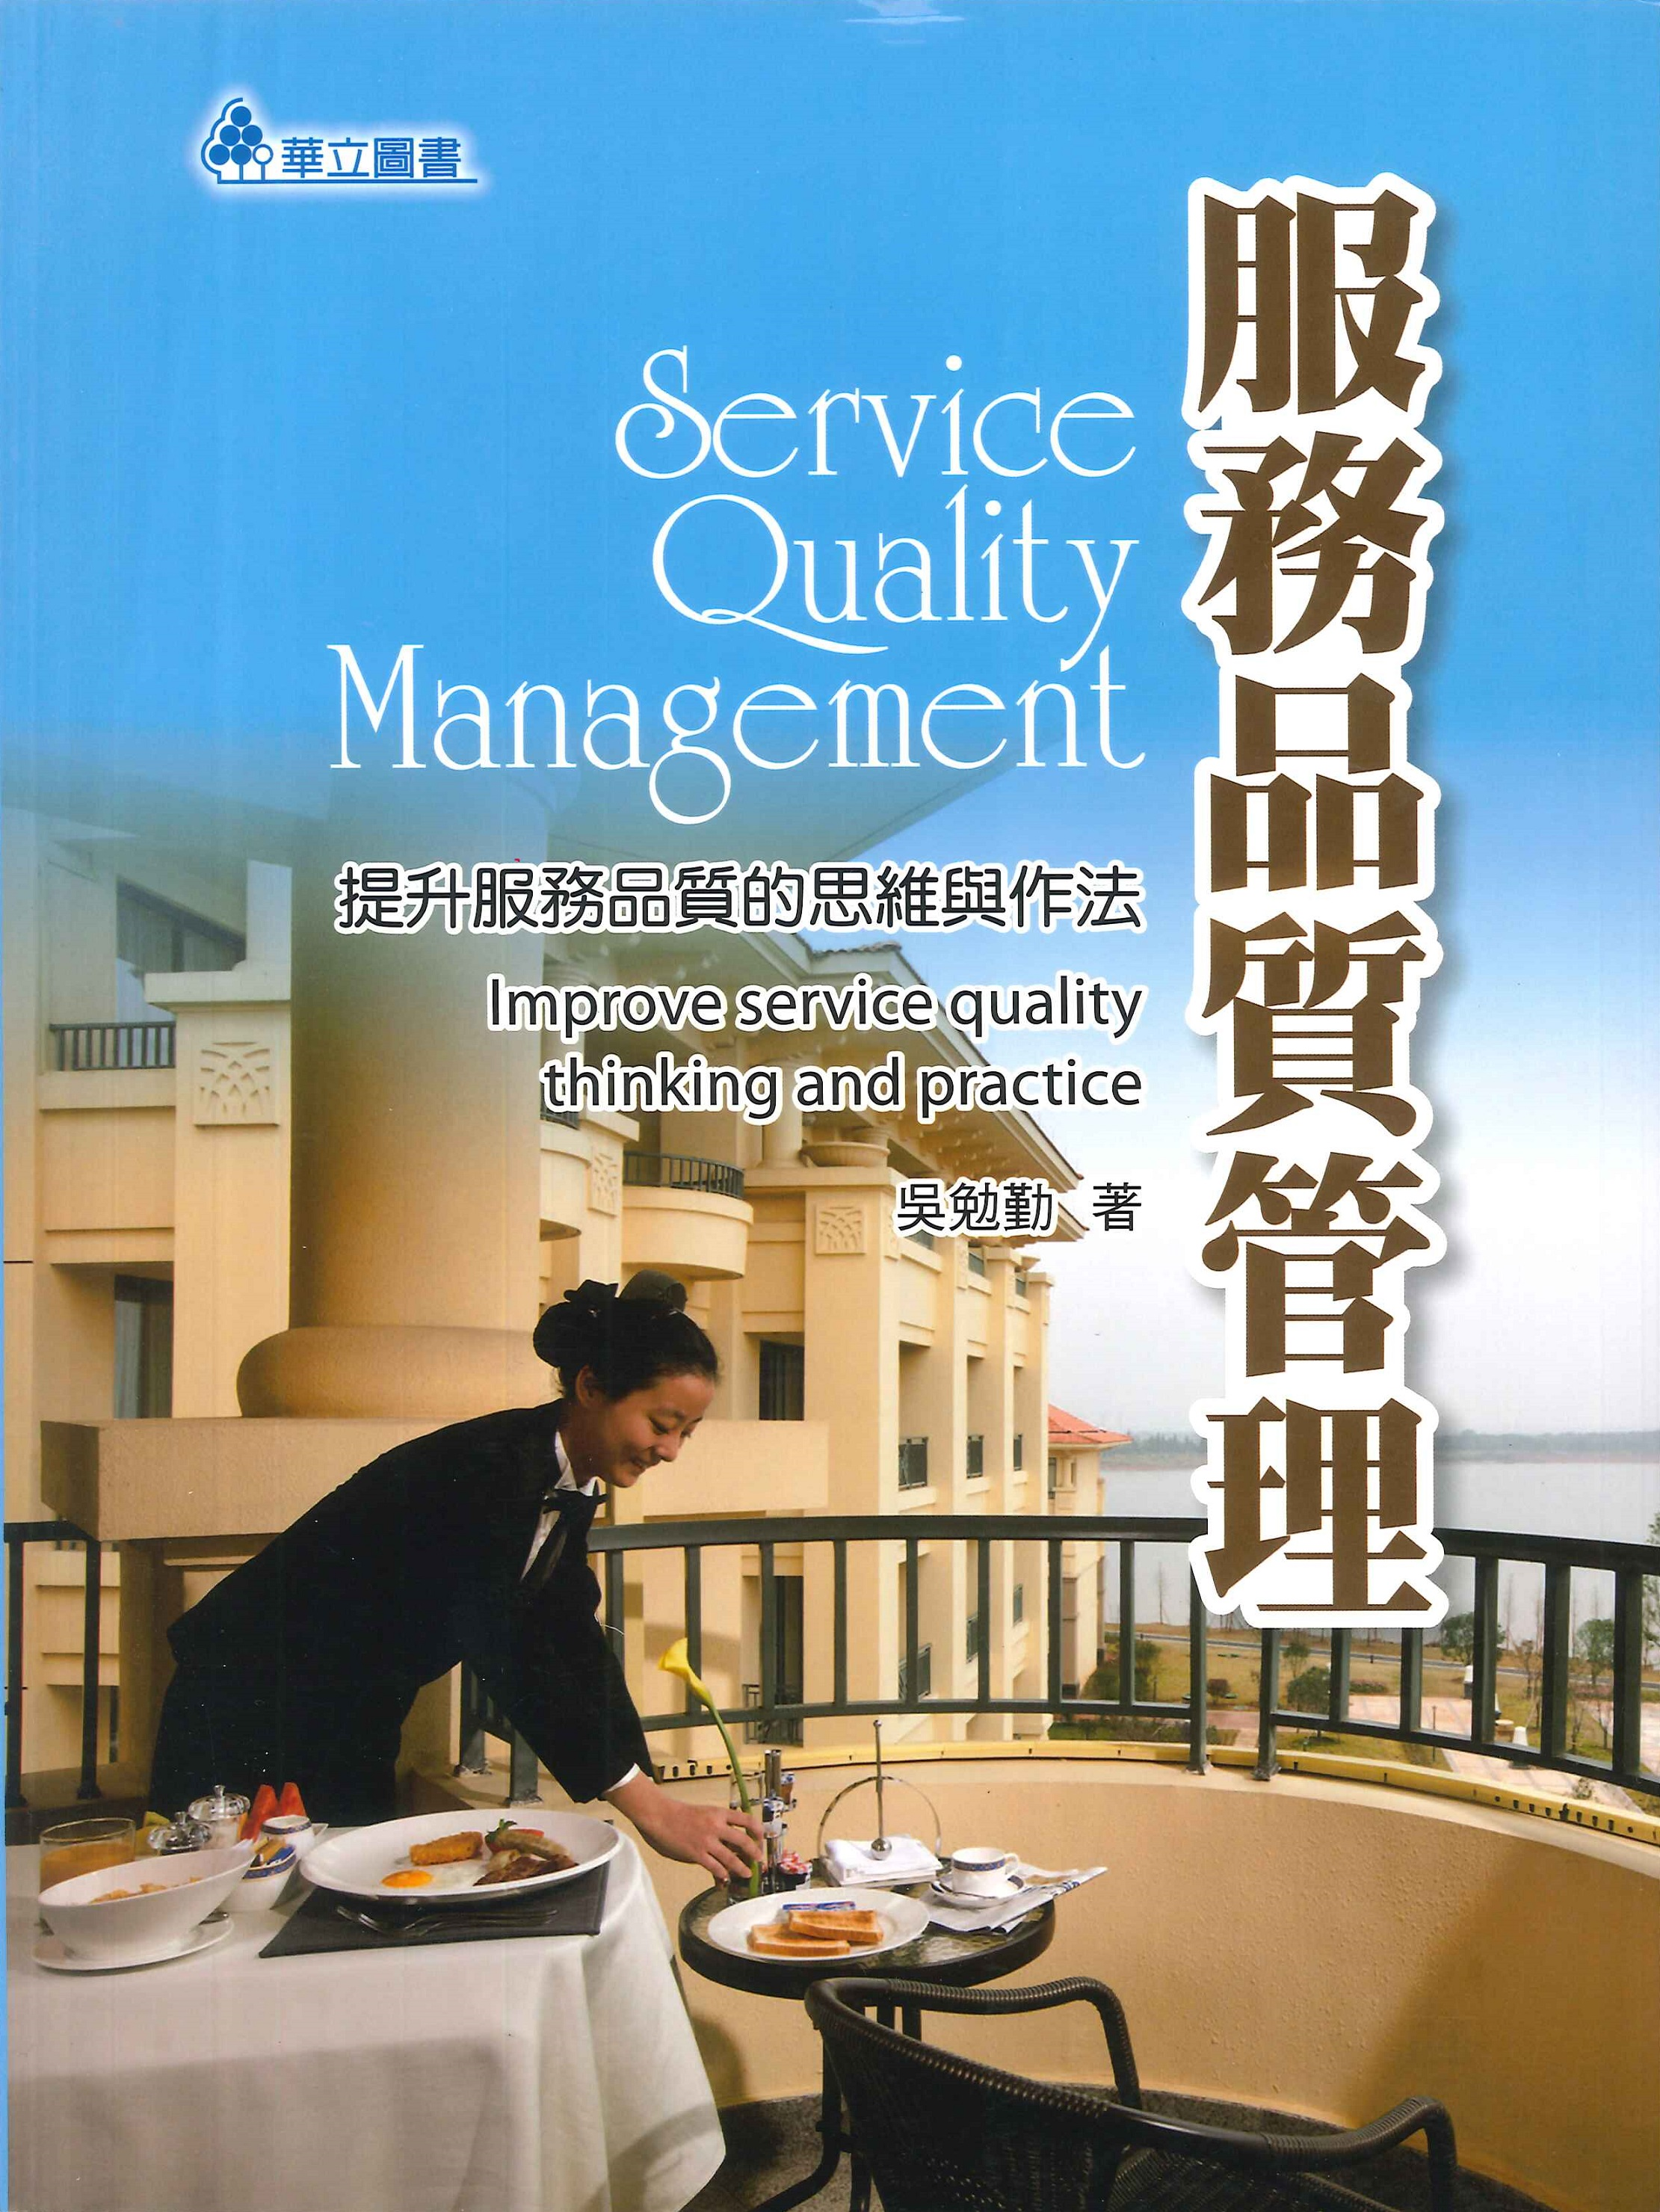 服務品質管理:提升服務品質的思維與作法=Service quality management: improve service quality thinking and practice